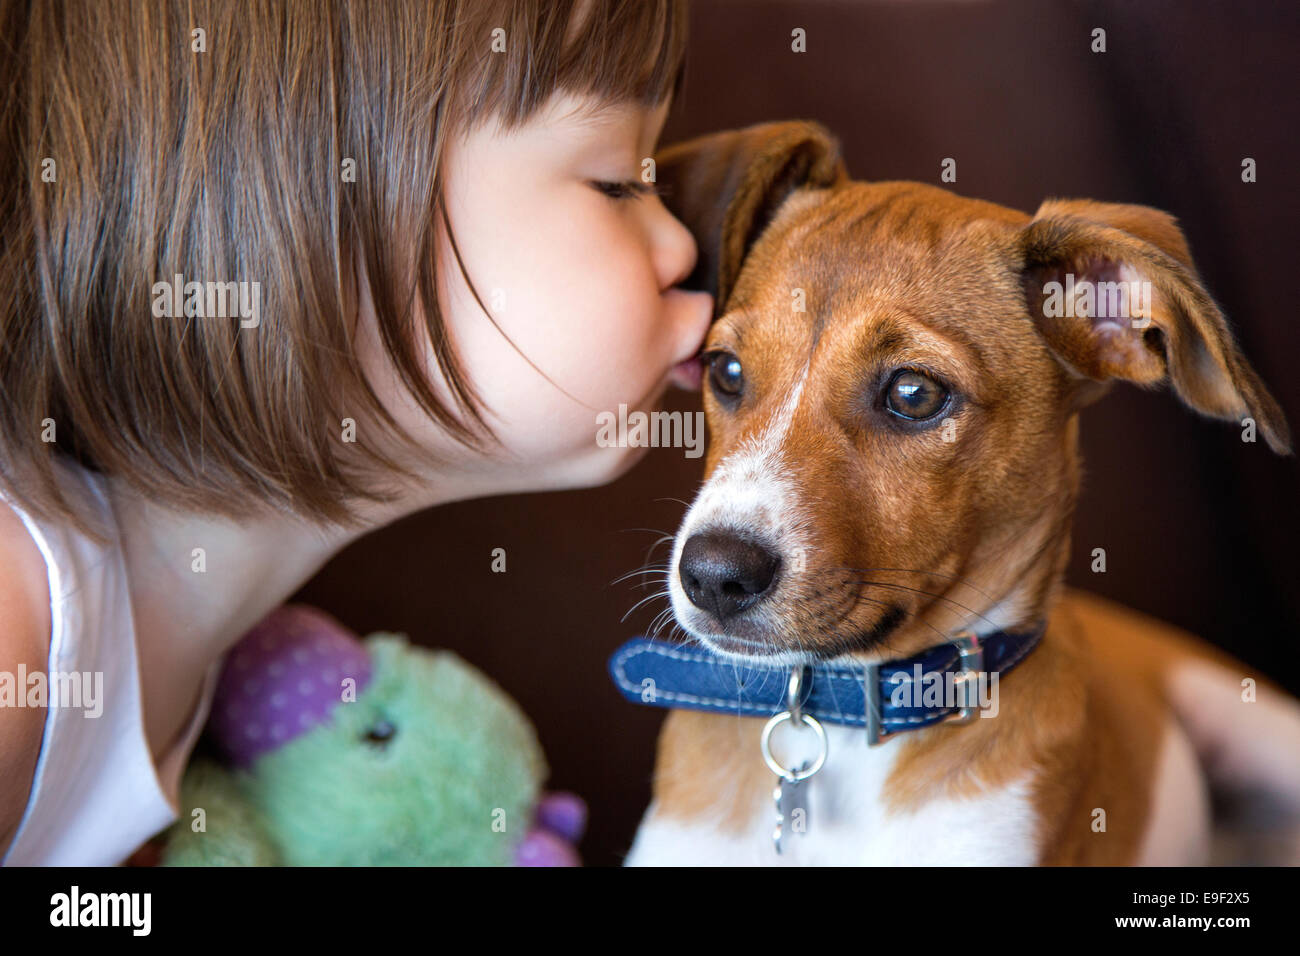 Toddler girl kissing her puppy dog Stock Photo